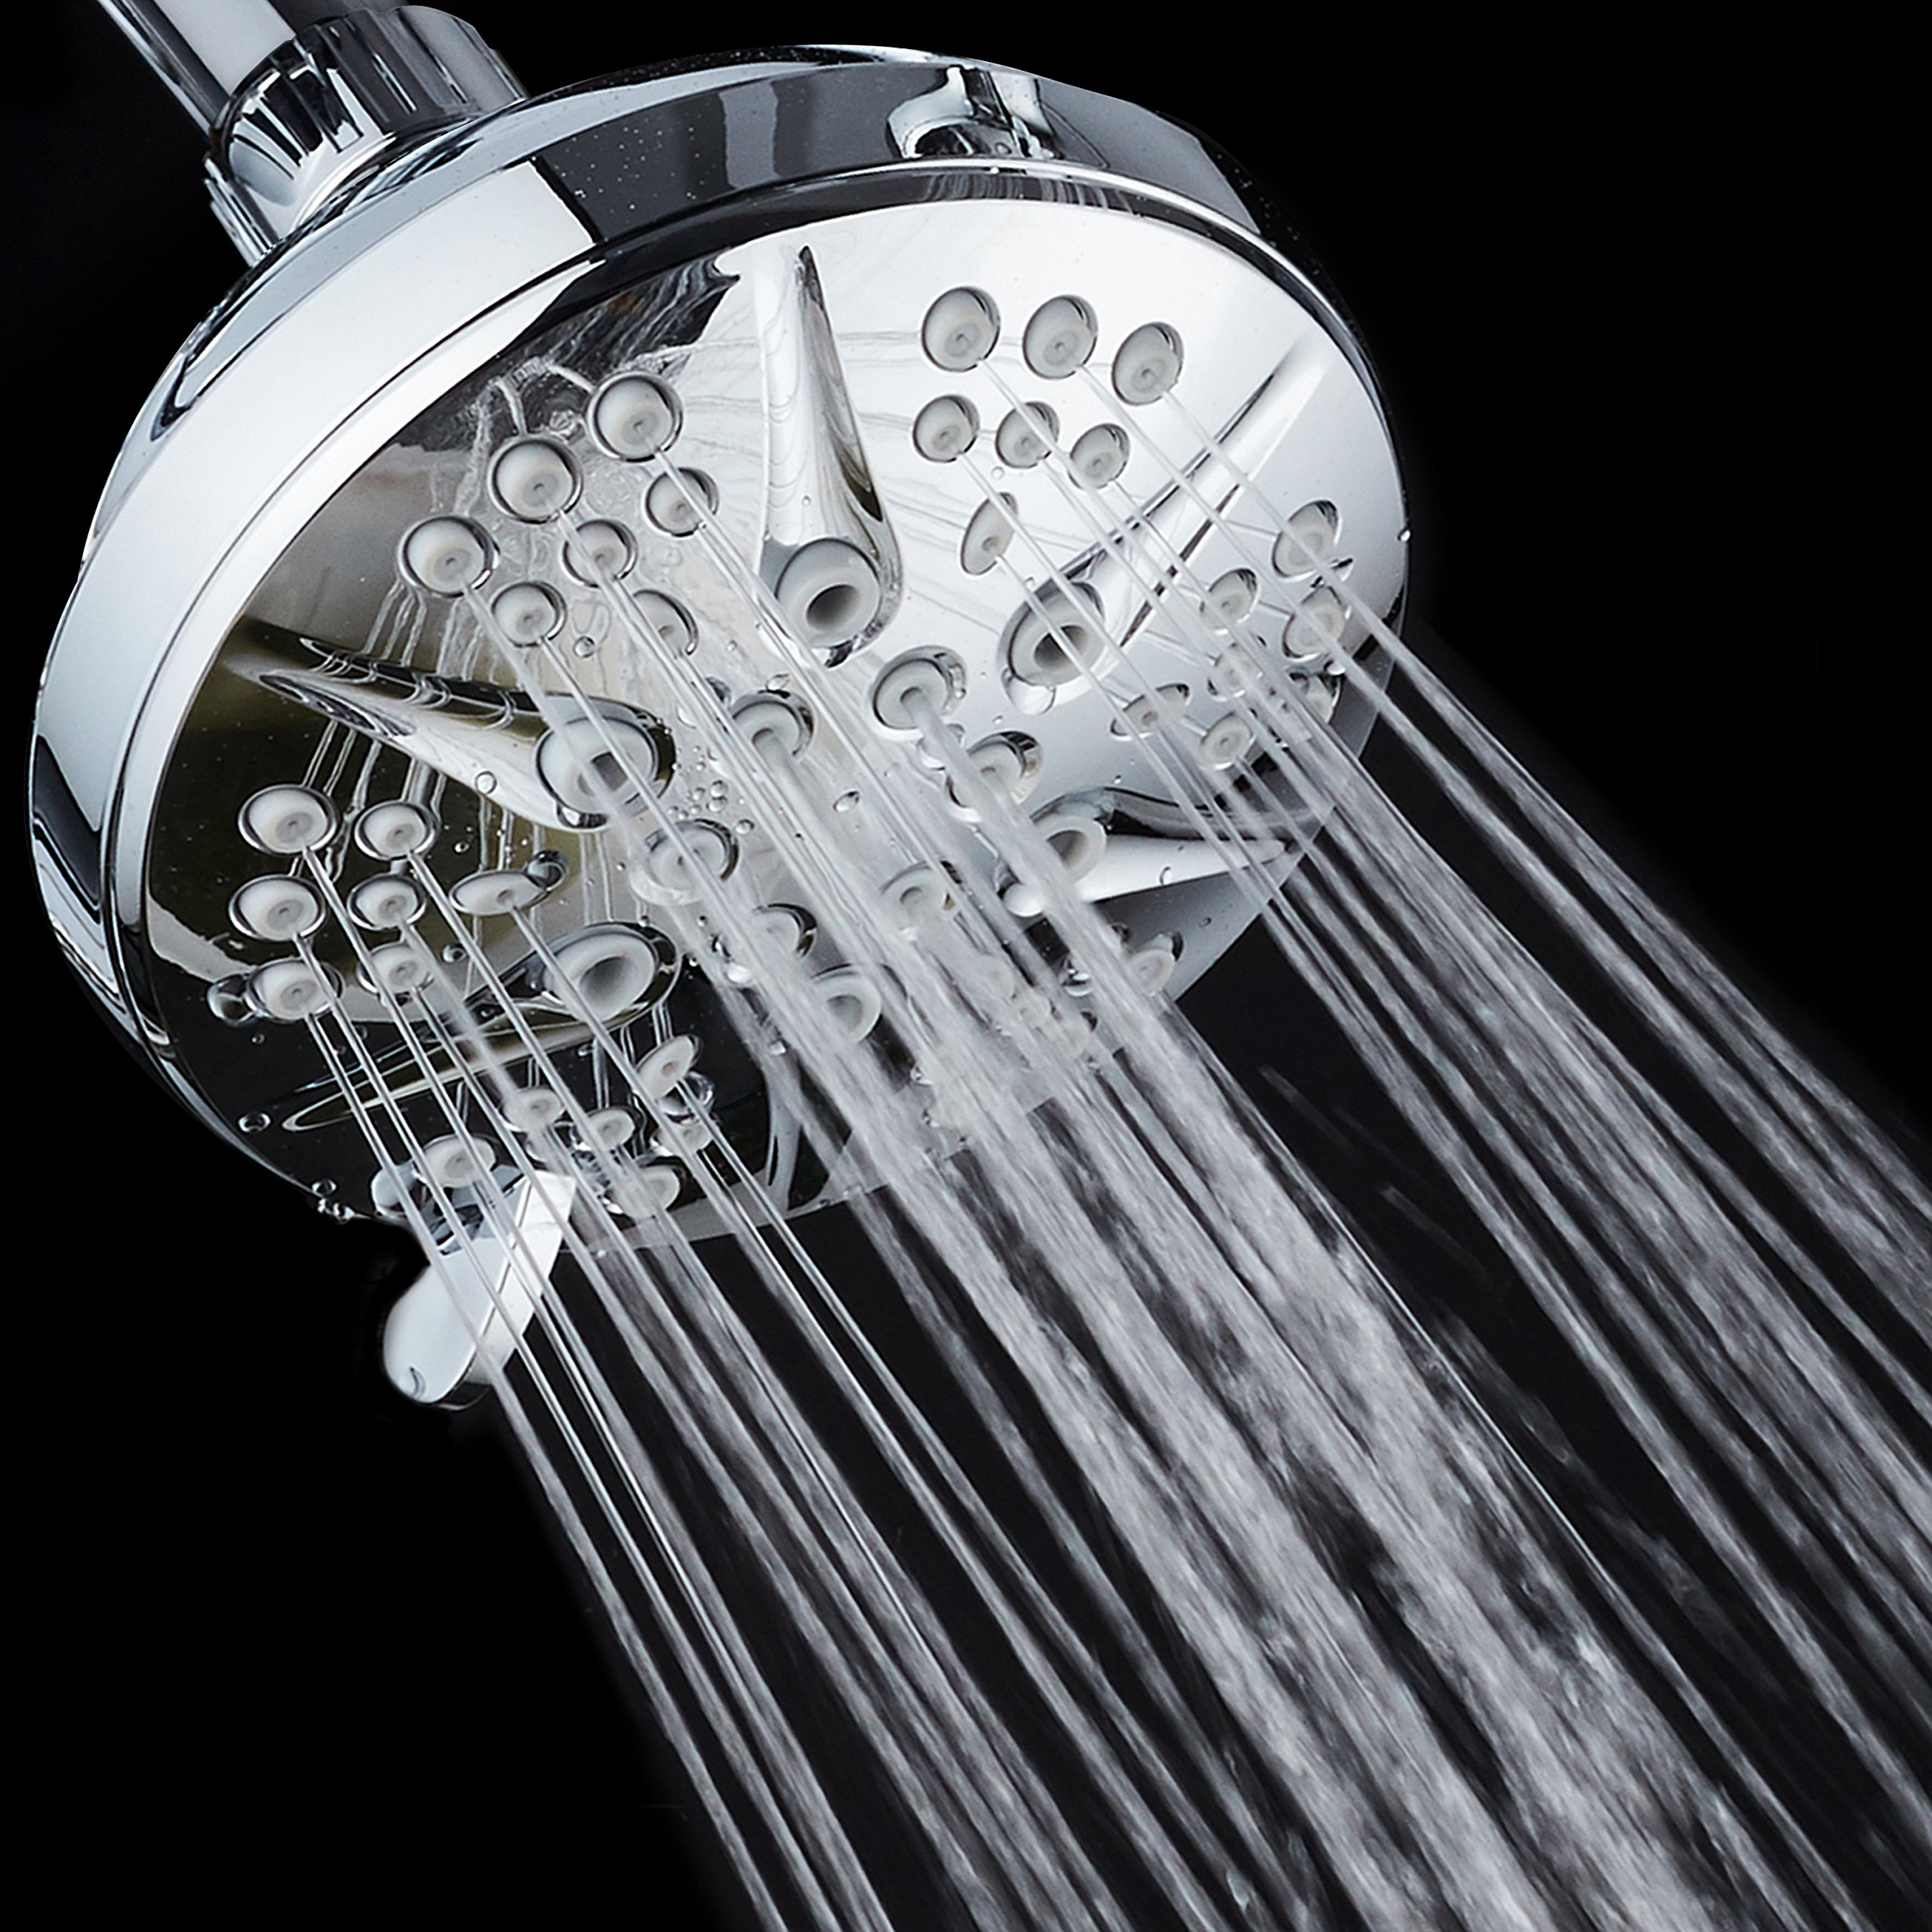 NOTILUS Giant High-Pressure 6-setting 4.3'' Face Modern Luxury Spa Shower Head - Solid Brass Metal Connection Nut, Angle-Adjustable Ball Joint, Anti-Clog Jets, All-Chrome Finish, by HotelSpa (Image #5)